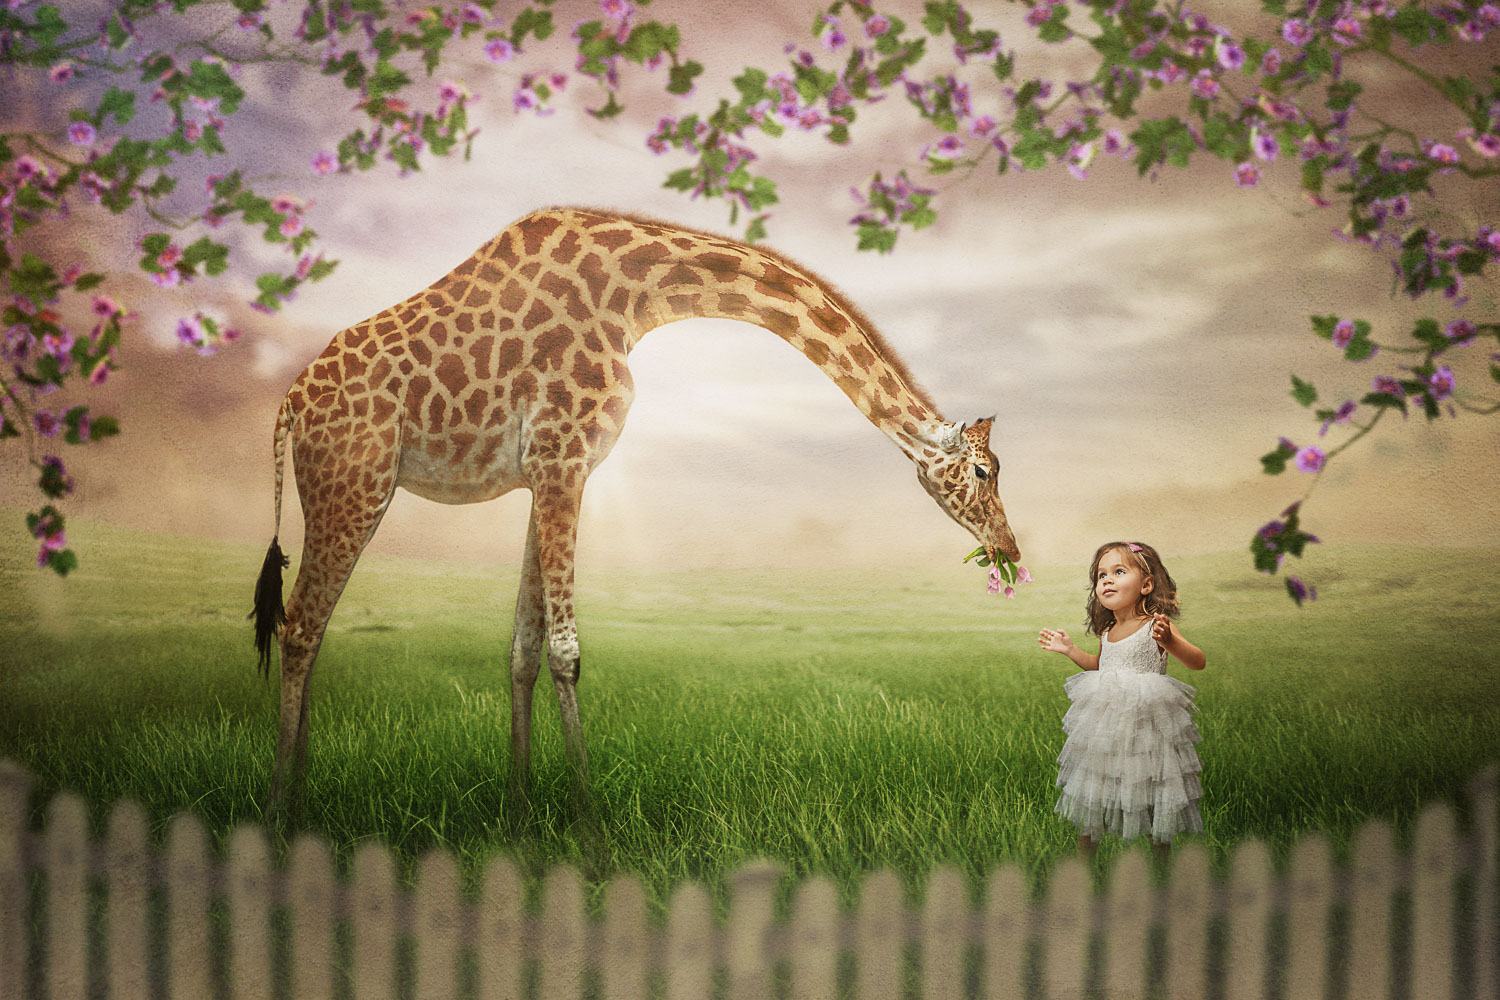 little girl with giraffe springtime storybook composite